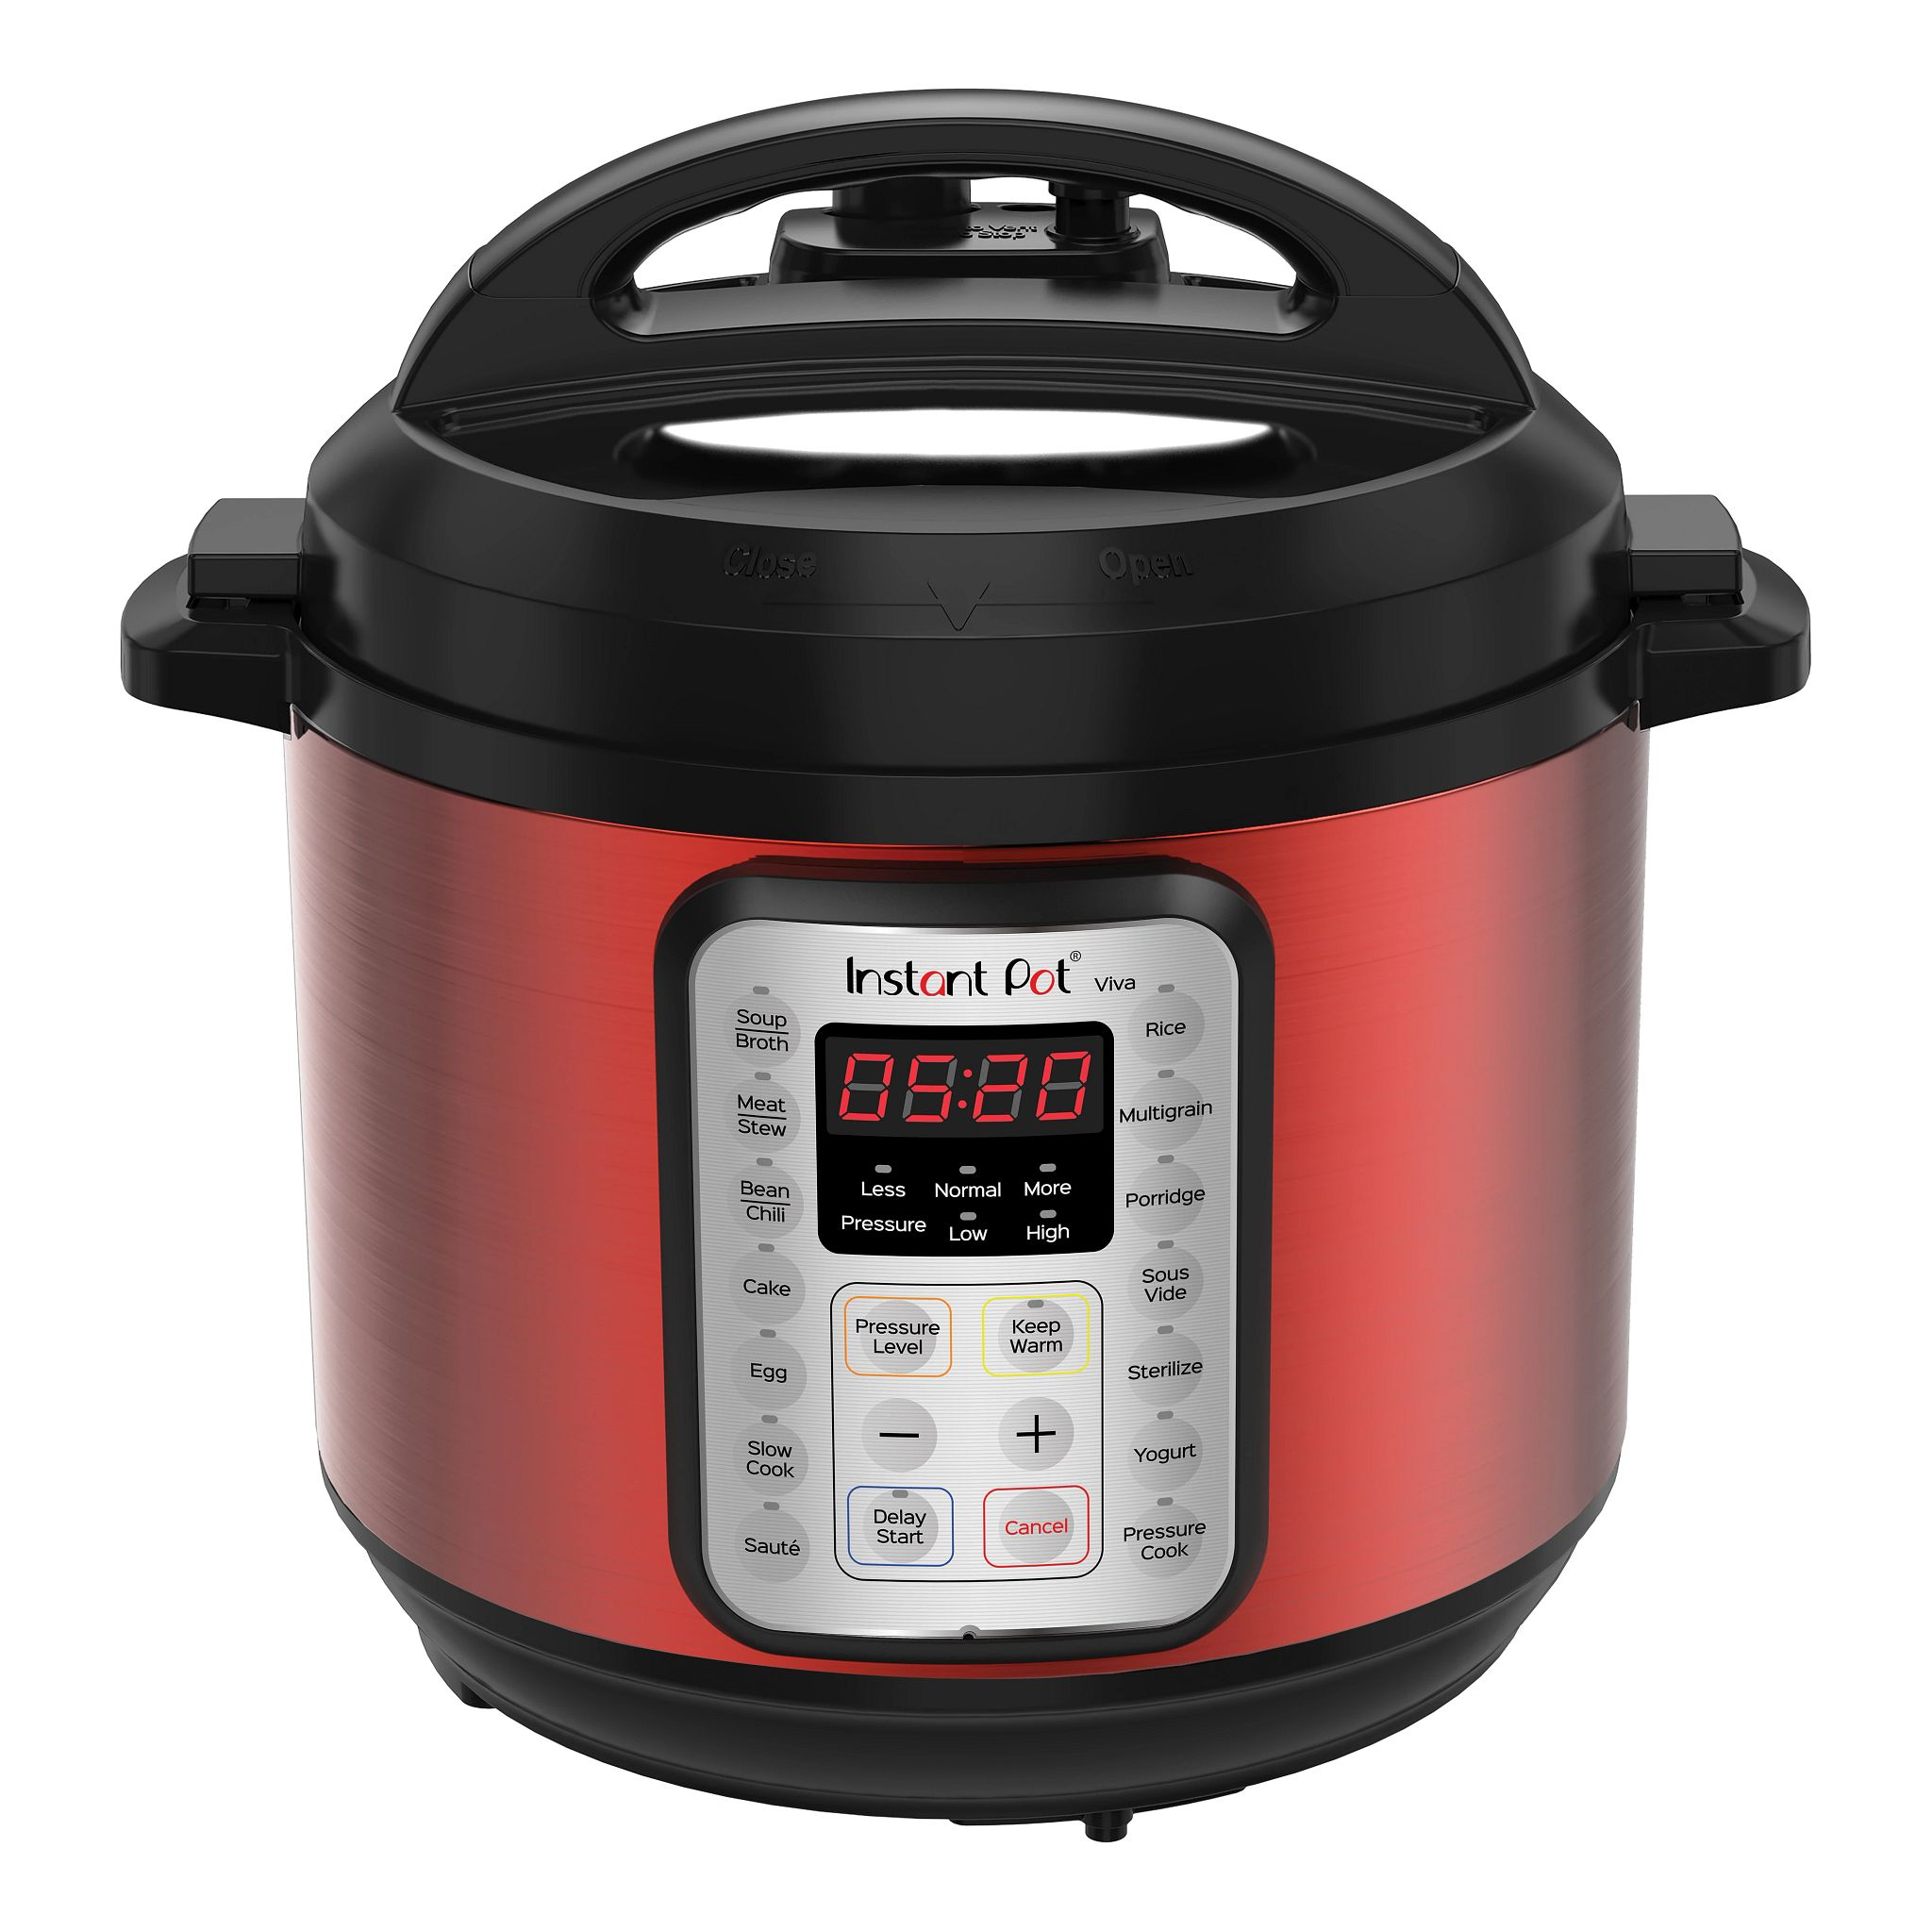 Instant Pot Viva 6-quart Multi-Use Pressure Cooker, Red